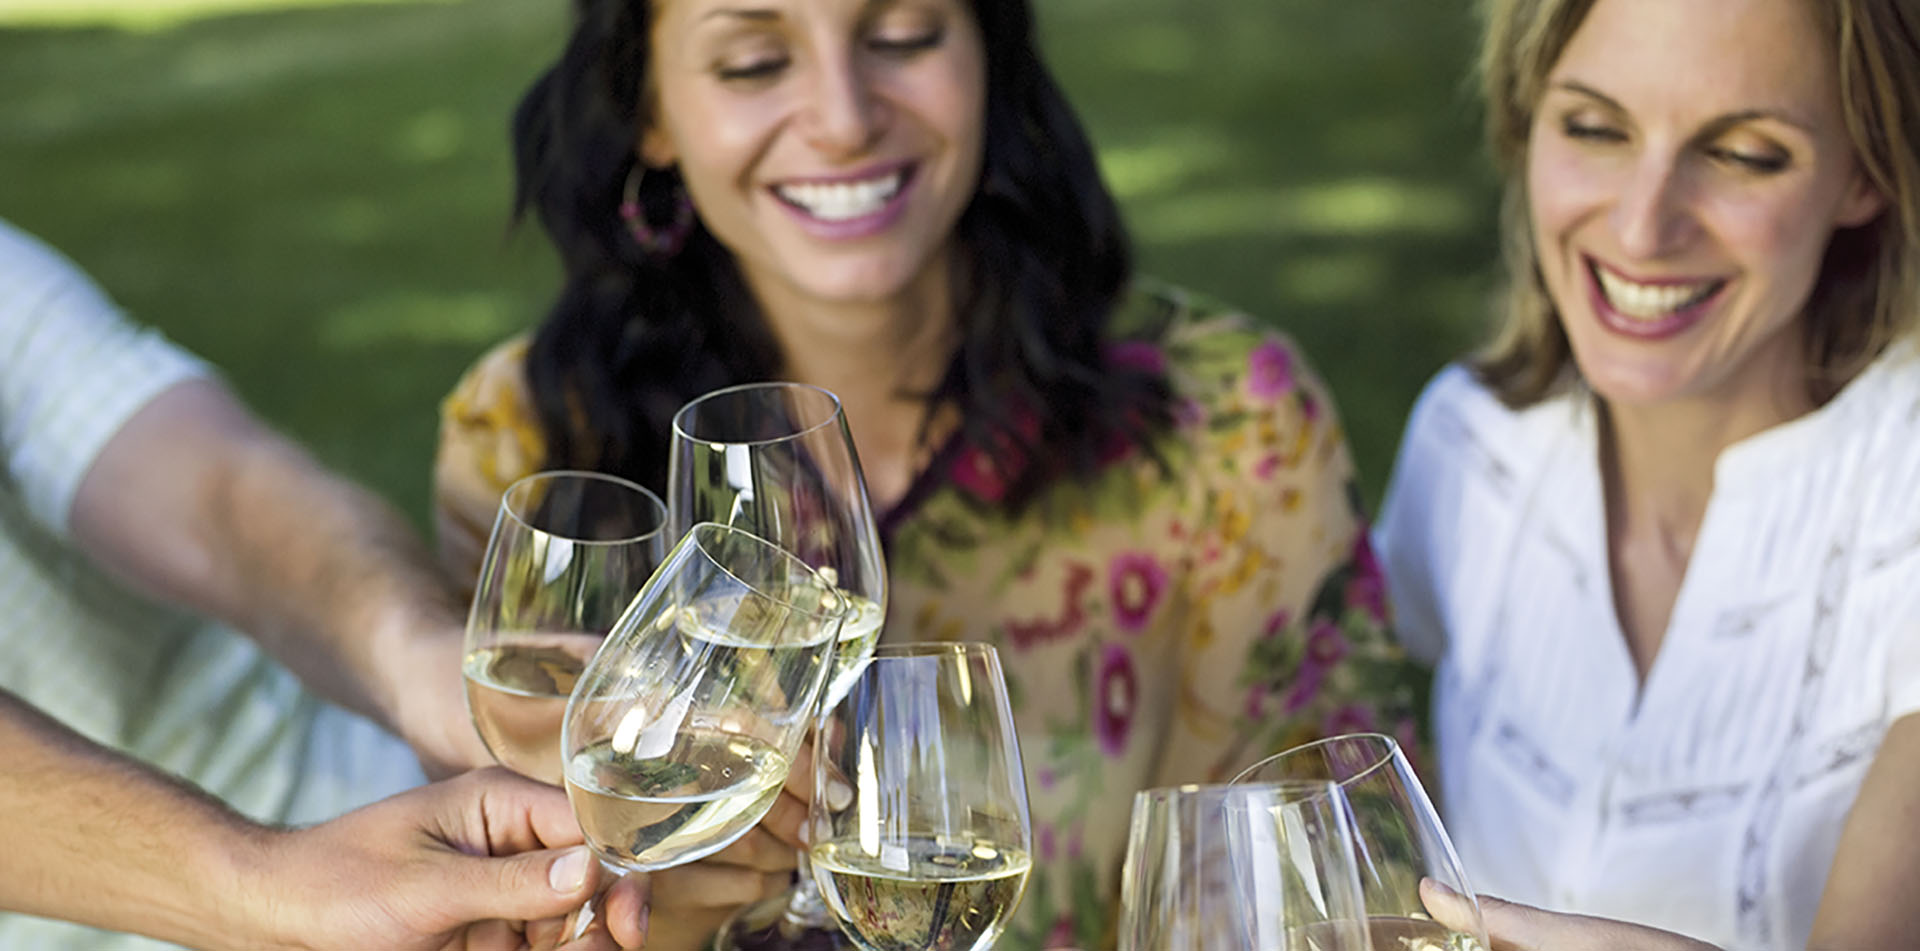 Traveling friends toasting with glasses of white wine international day of friendship - luxury vacation destinations